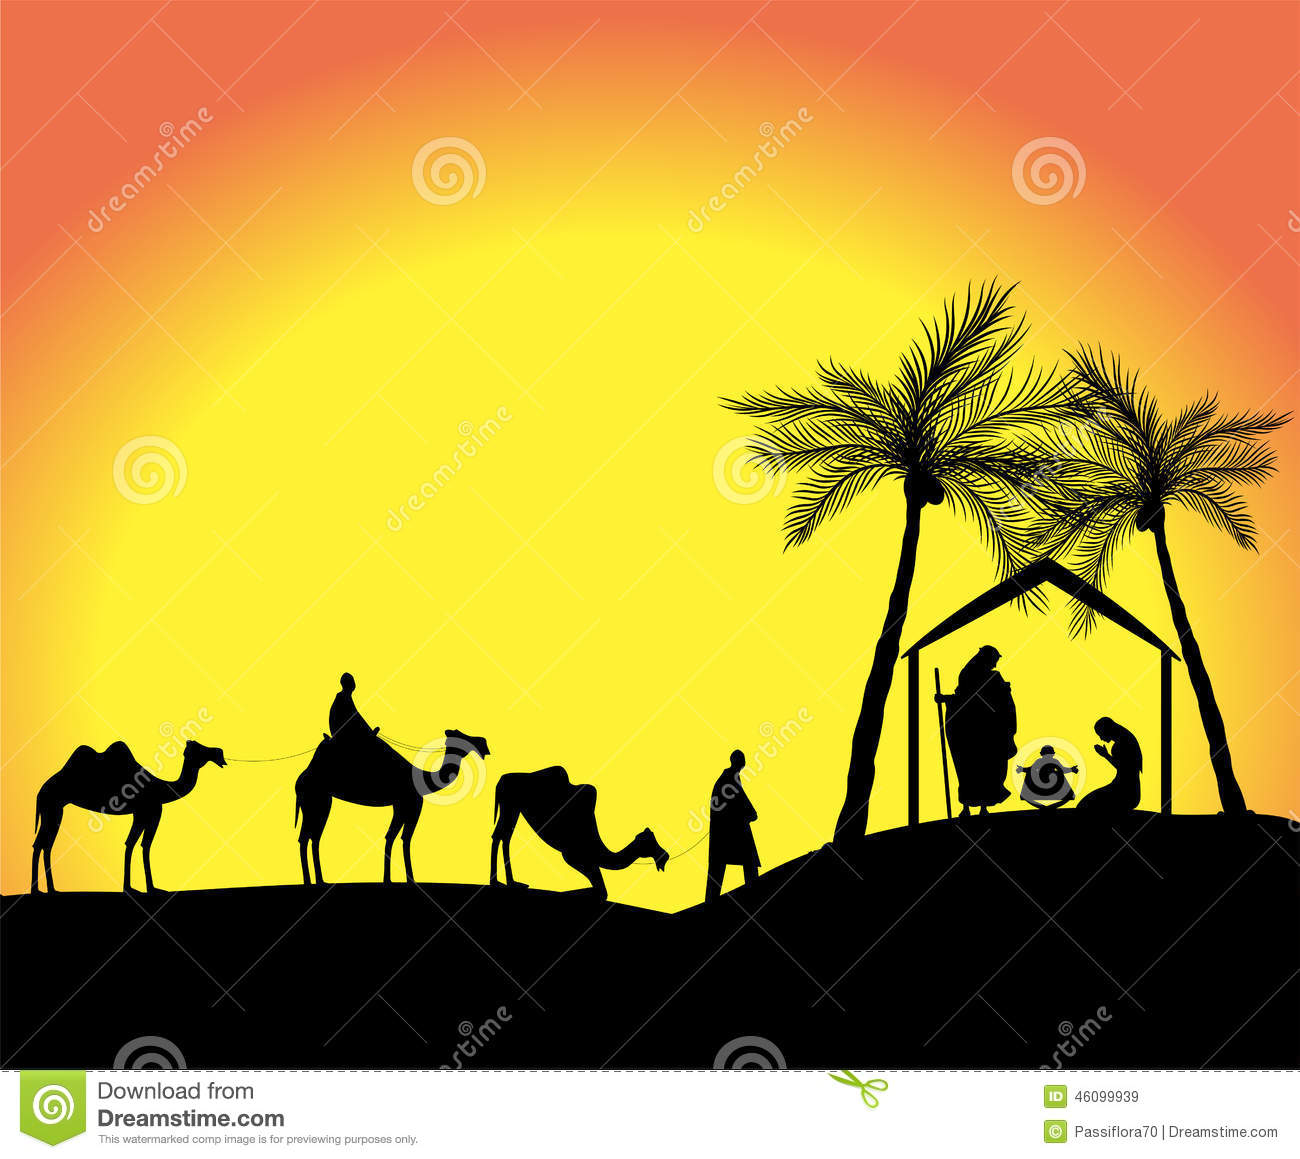 Silhouette of the nativity scene with the three wise men in the desert ...